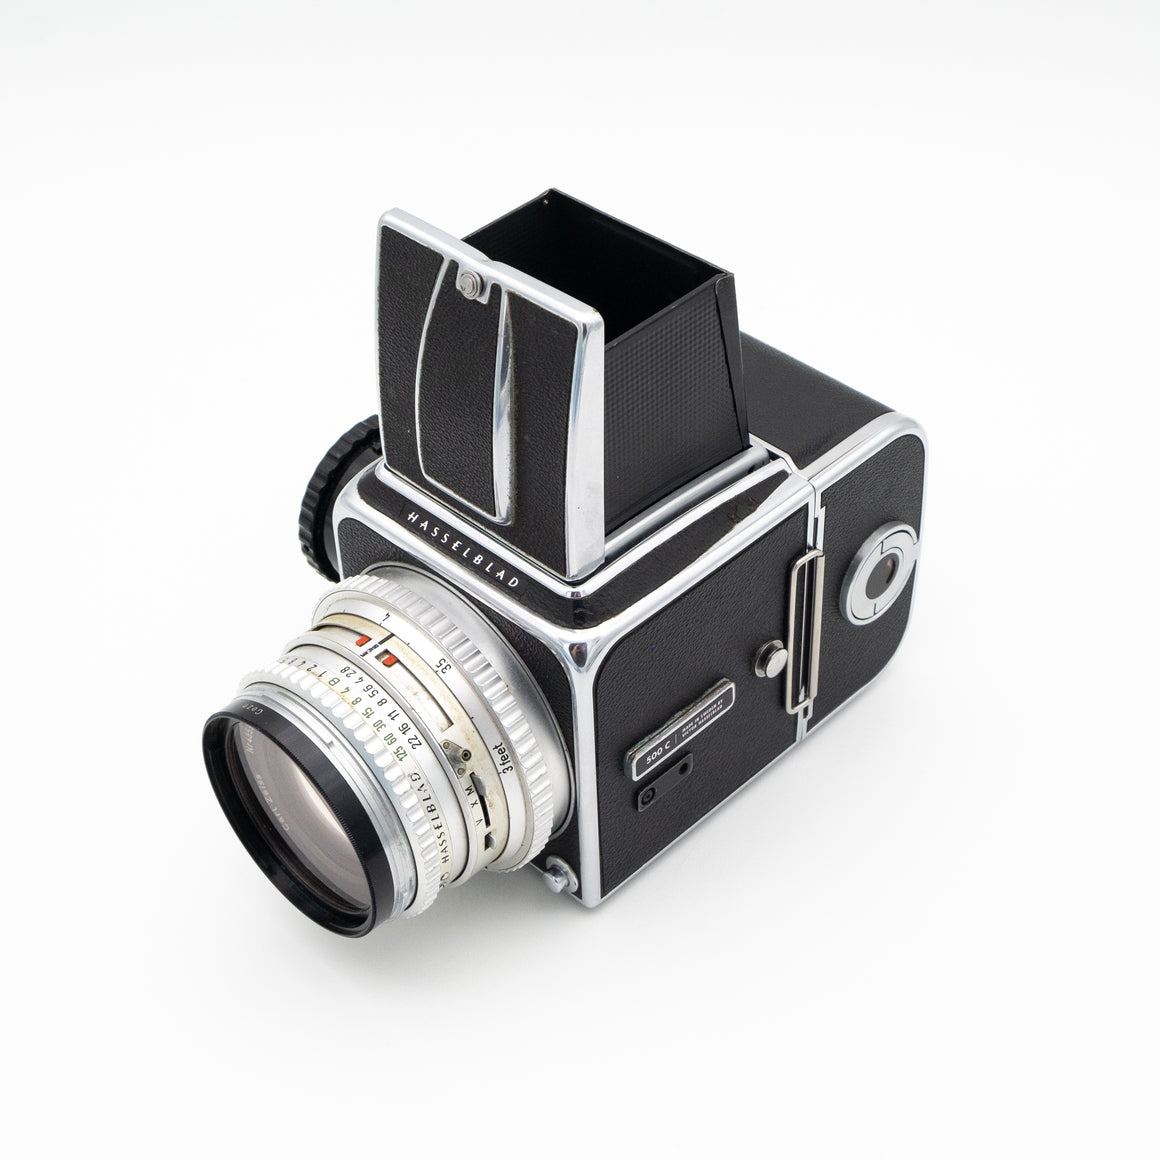 Hasselblad 500 C Medium Format SLR Camera with 80mm f/2.8 Lens